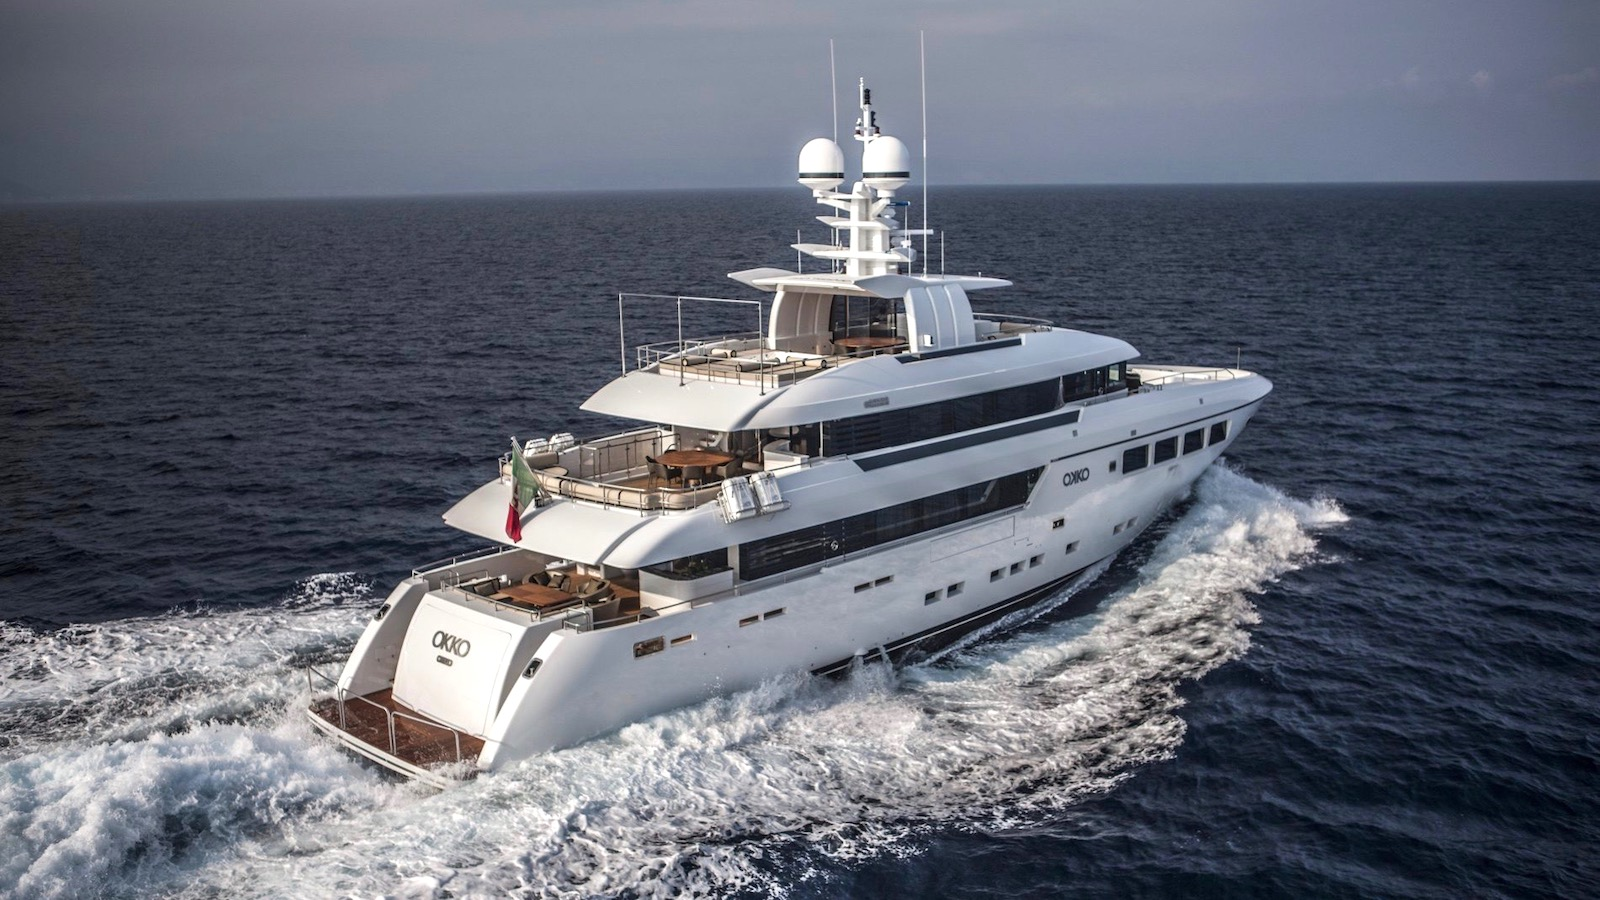 IYC is pleased to announce the sale of 134'/ 41m M/Y OKKO